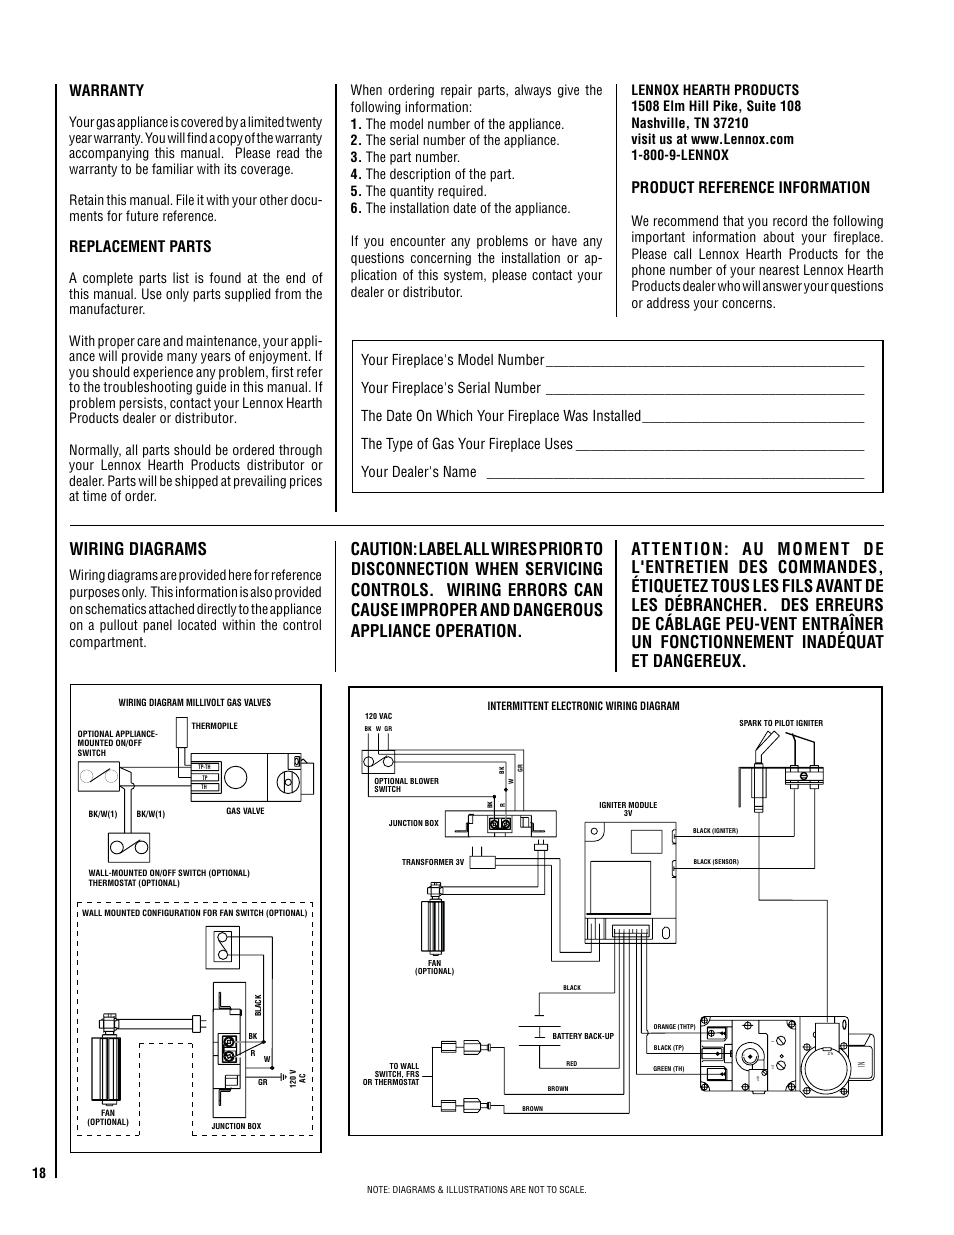 2003 Chevy Cavalier Radio Wiring Harness Diagram